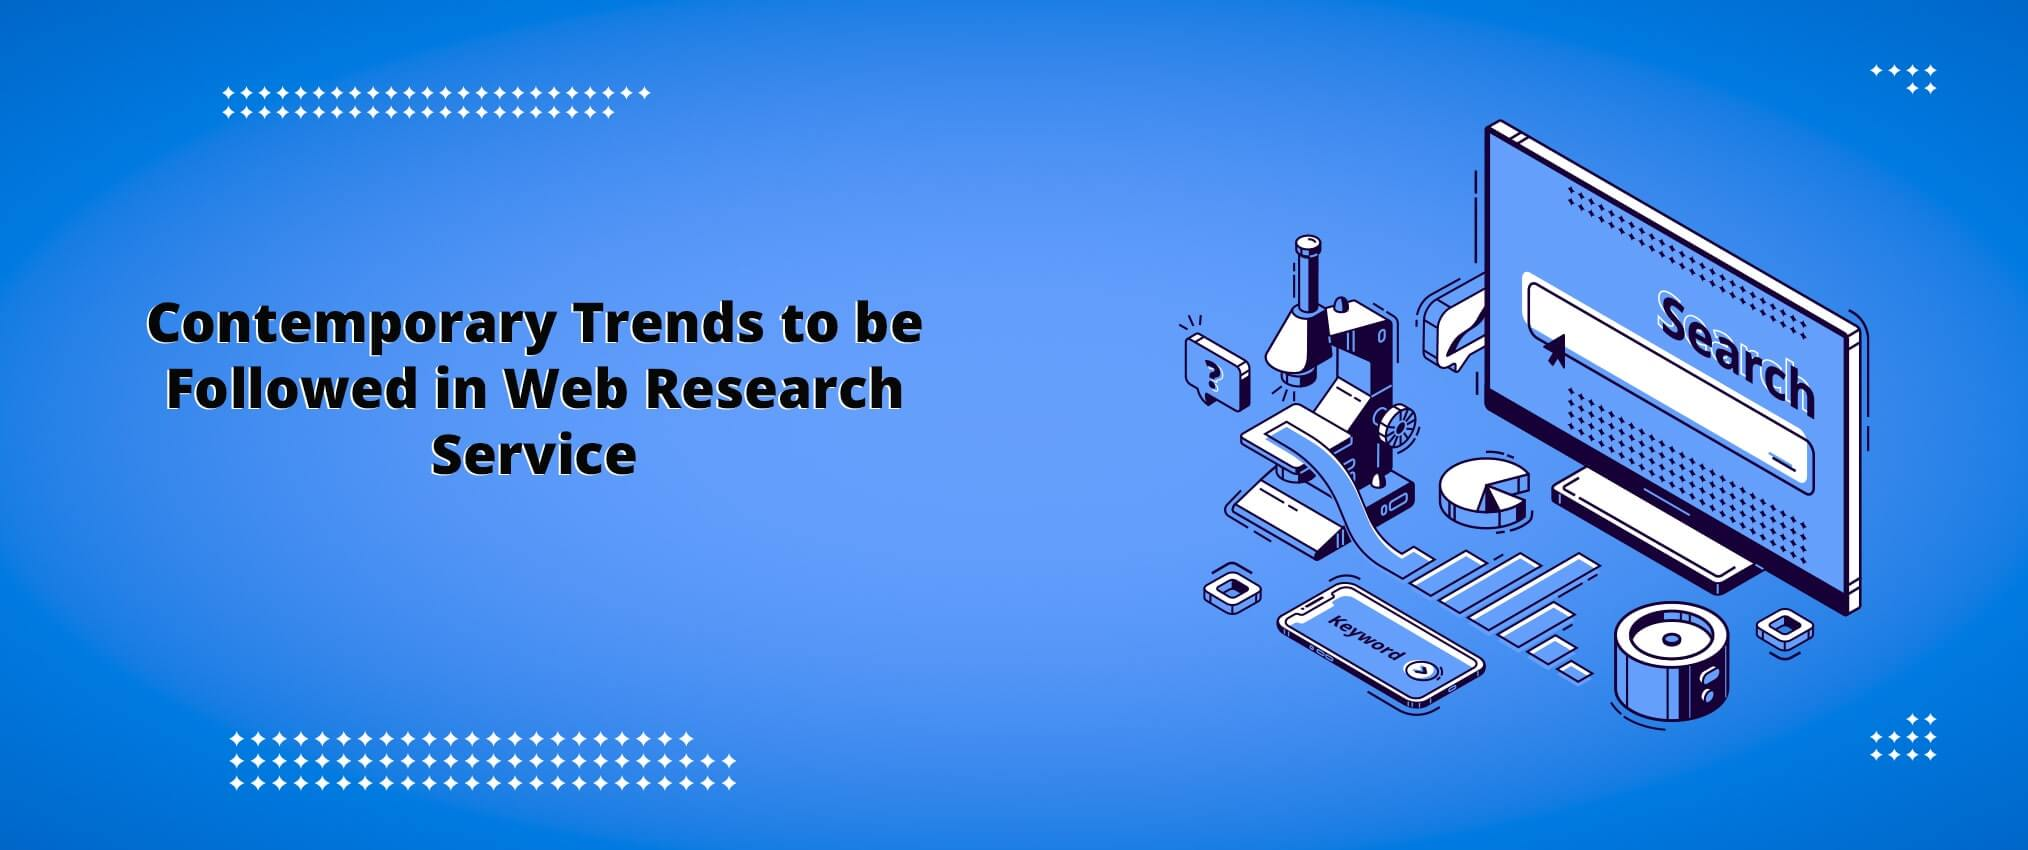 outsource web research services